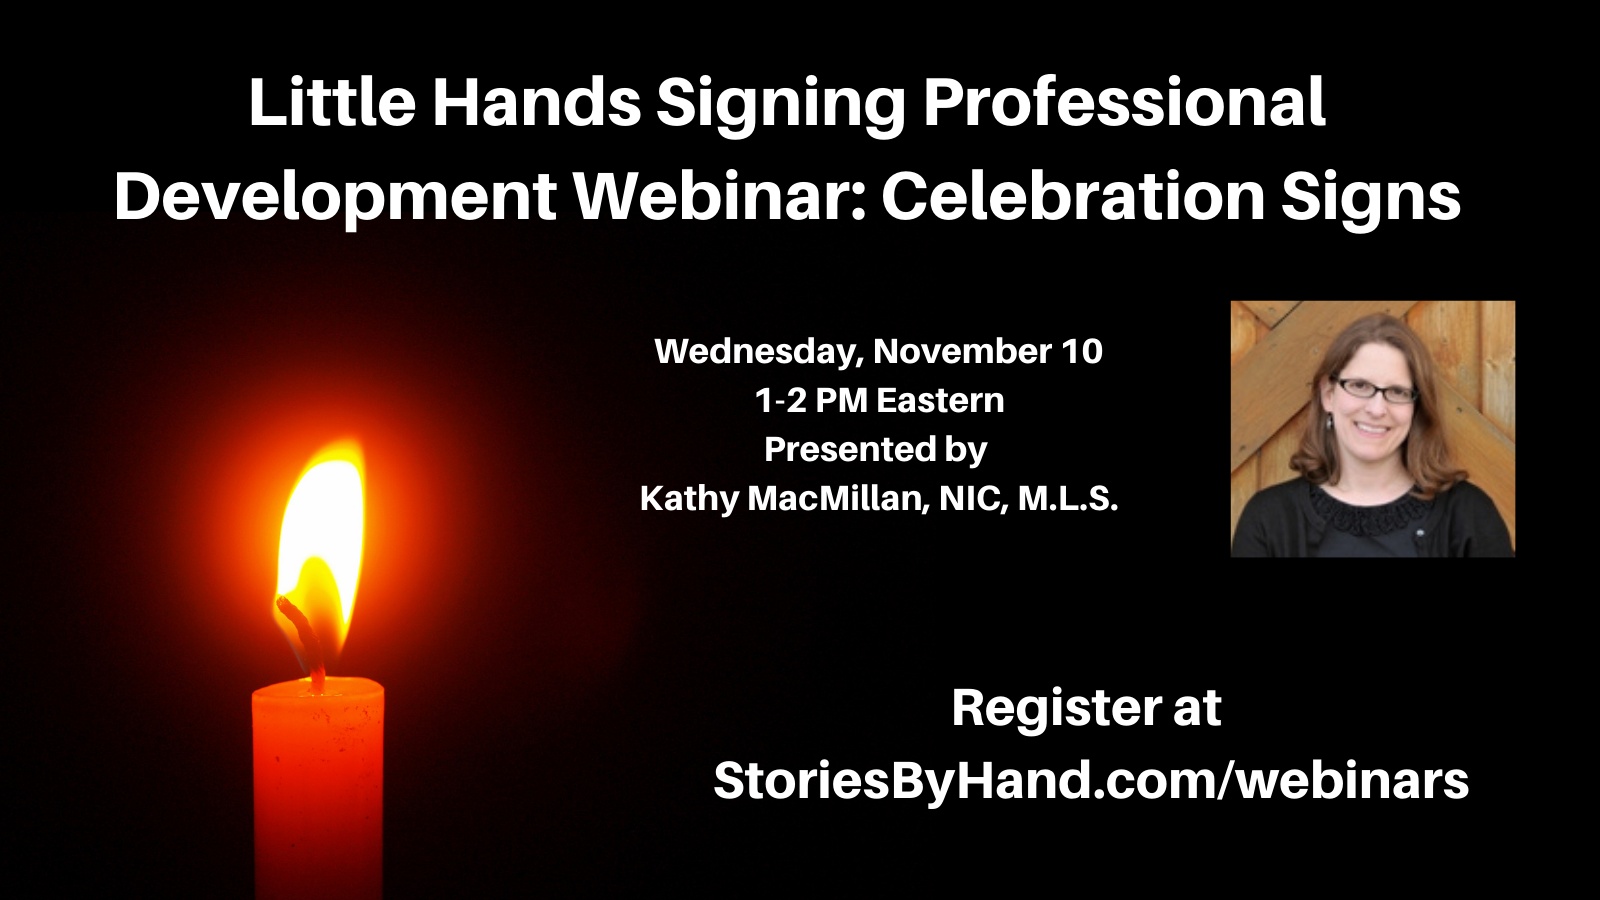 A red candle glows on the left. A photo of a smiling white woman appears on the right. Text reads: Little Hands Signing Professional Development Webinar: Autumn Signs. Wednesday, November 10. 1-2 PM Eastern. Presented by Kathy MacMillan, NIC, MLS. Register at StoriesByHand.com/webinars